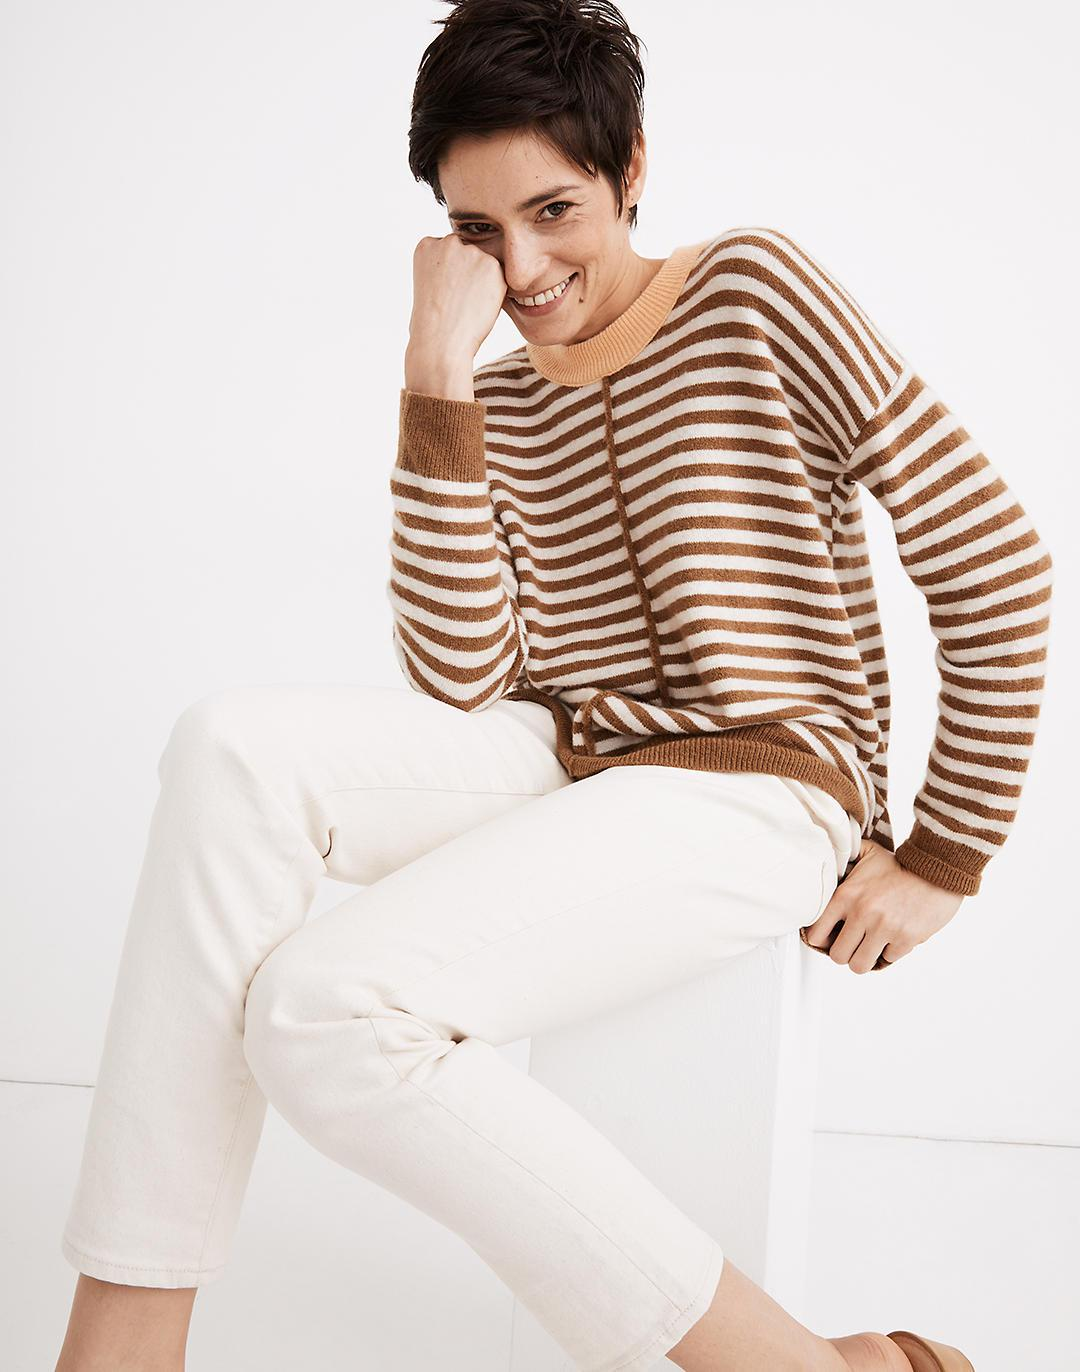 Stripe-Play Smithe Pullover Sweater in Coziest Yarn